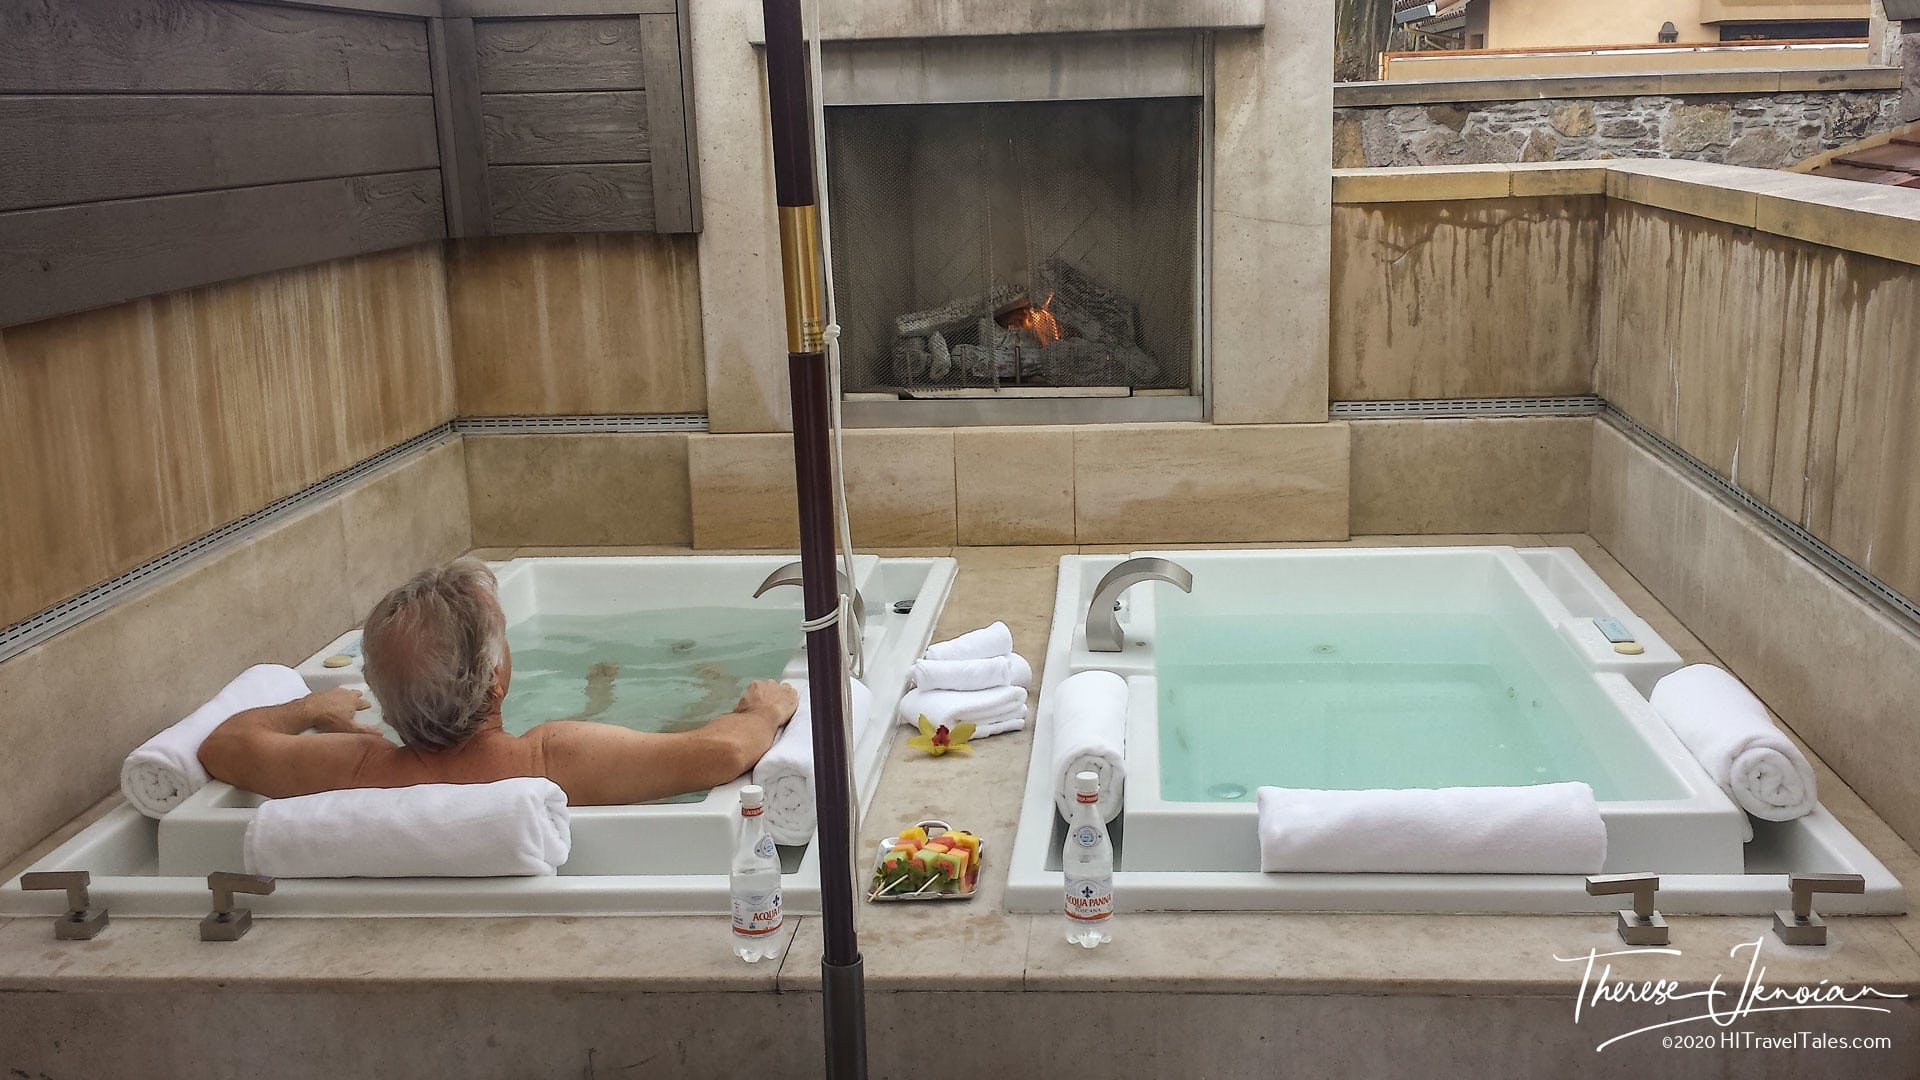 Soaking In The Outdoor Tubs In Front Of The Outdoor Fireplace At